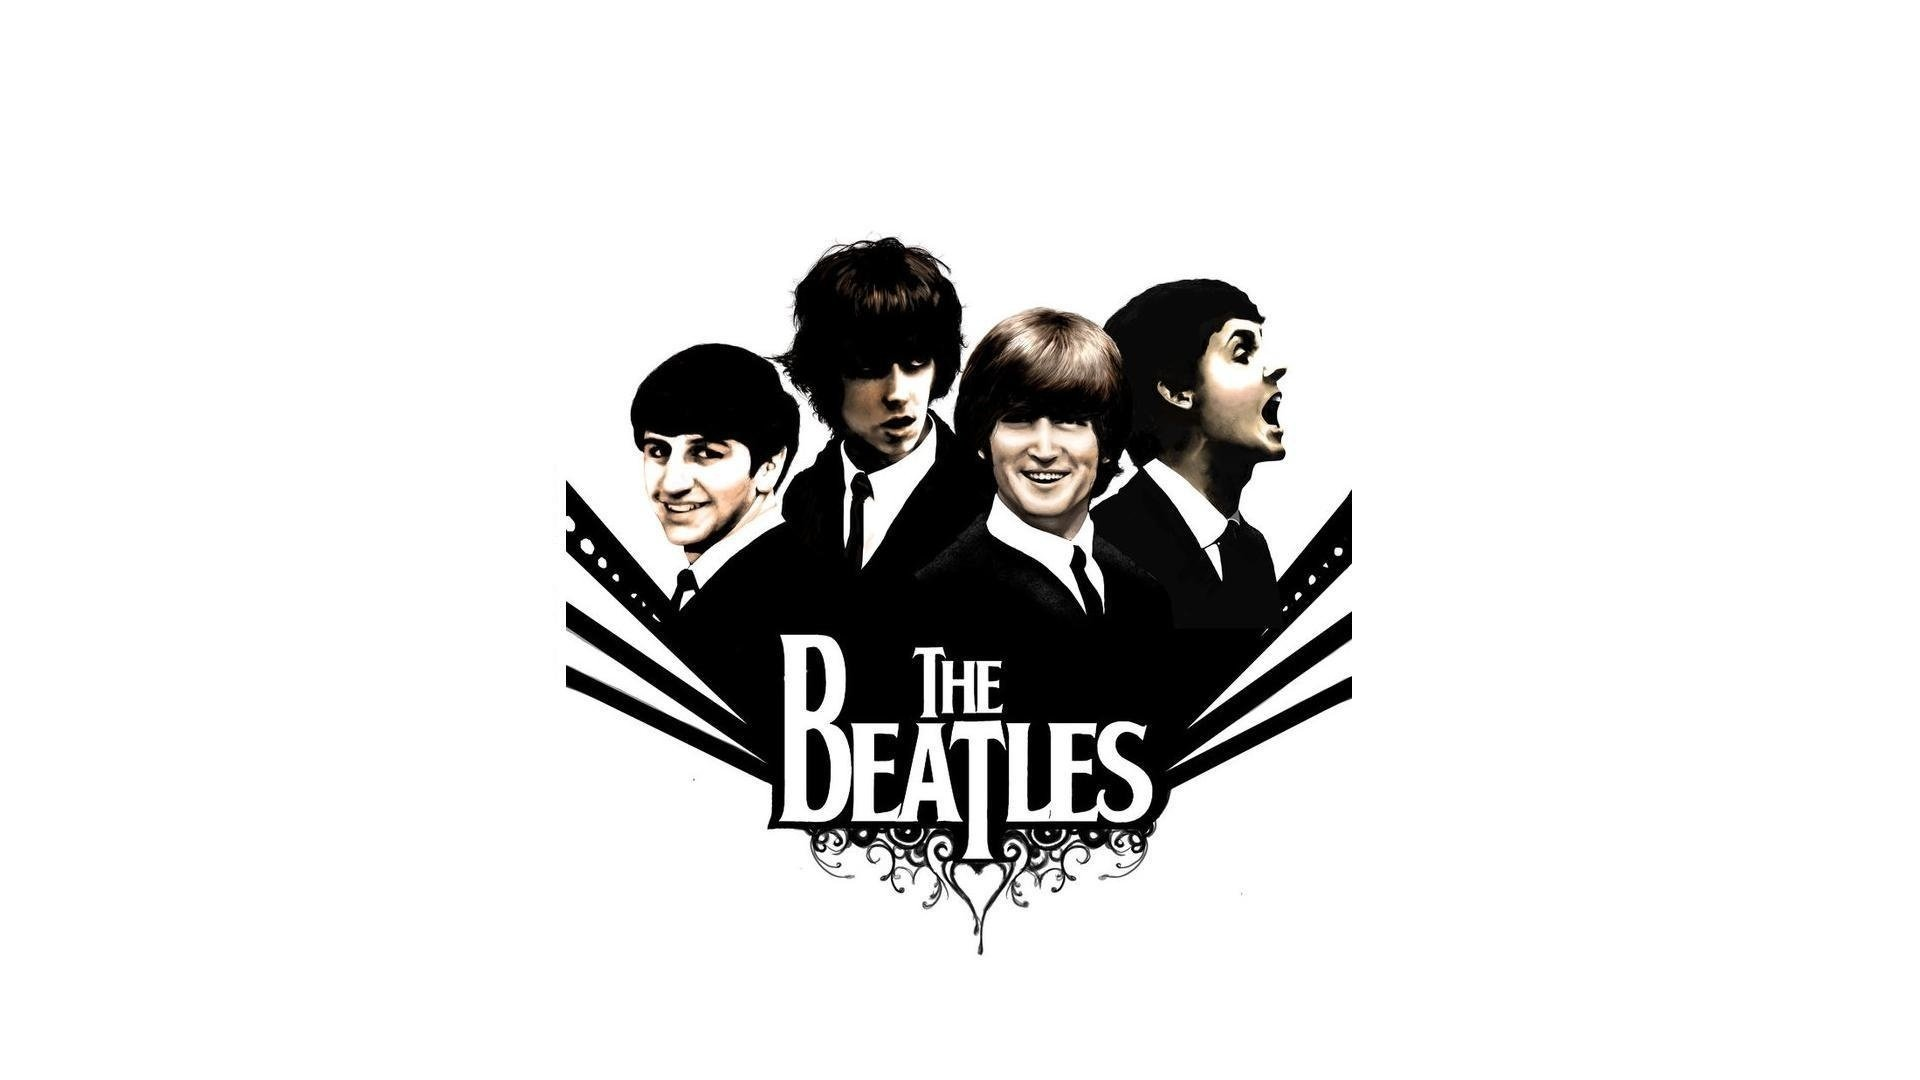 146 the beatles hd wallpapers background images wallpaper abyss hd wallpaper background image id254144 1920x1080 music the beatles voltagebd Choice Image